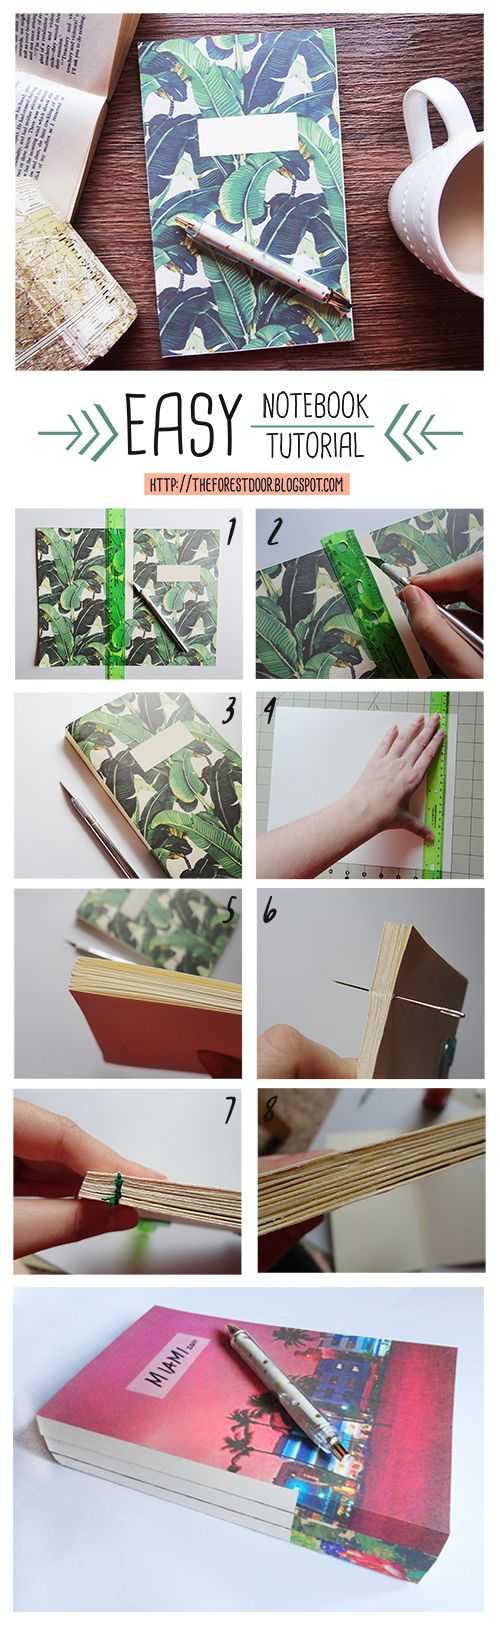 Tutoría fácil para encuadernar cuadernos   -   Easy Notebook DIY Tutorial Book binding from TheForestDoor  a DIY, Lifestyle, and Design blog